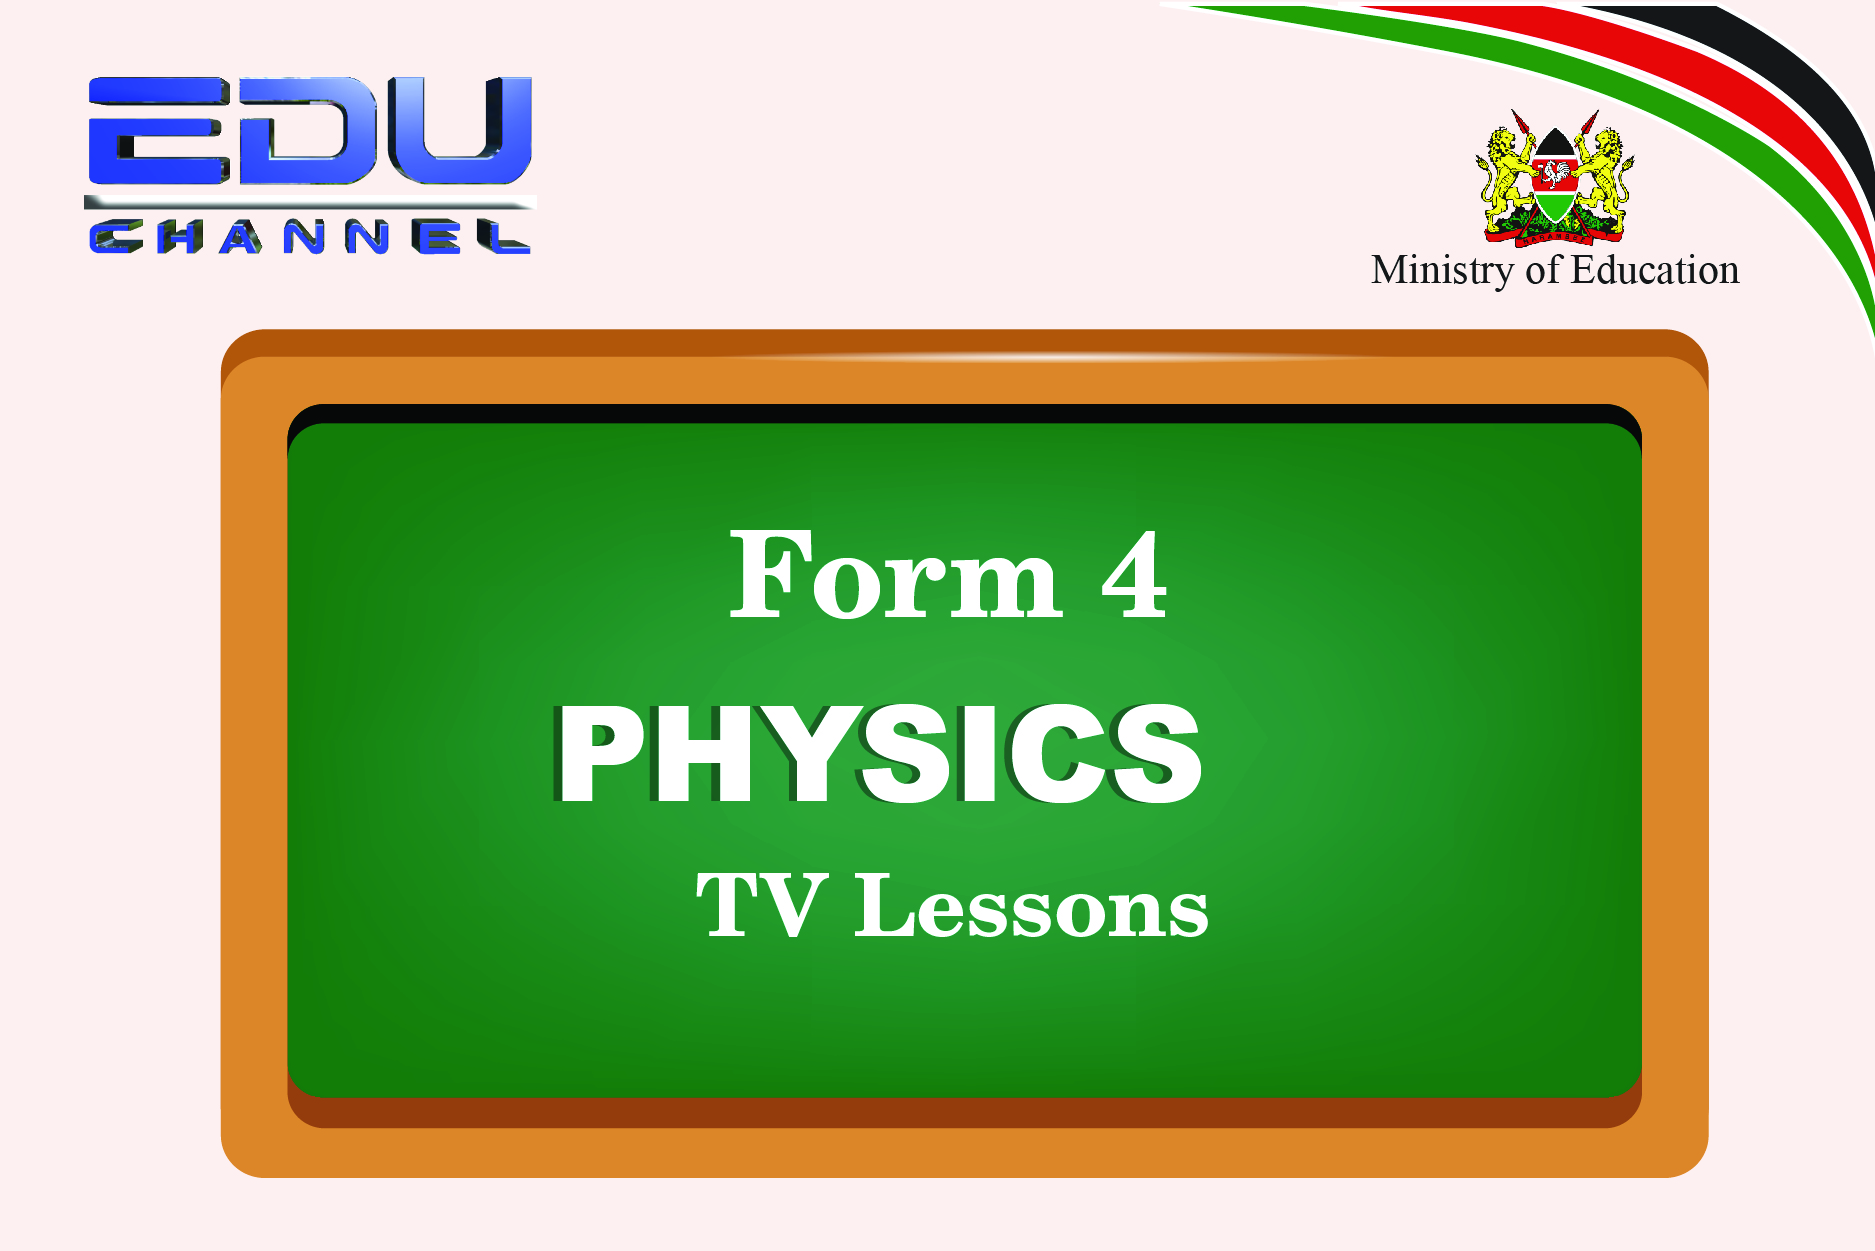 Form 4 Physics Lesson 3: Thin Lenses part 3